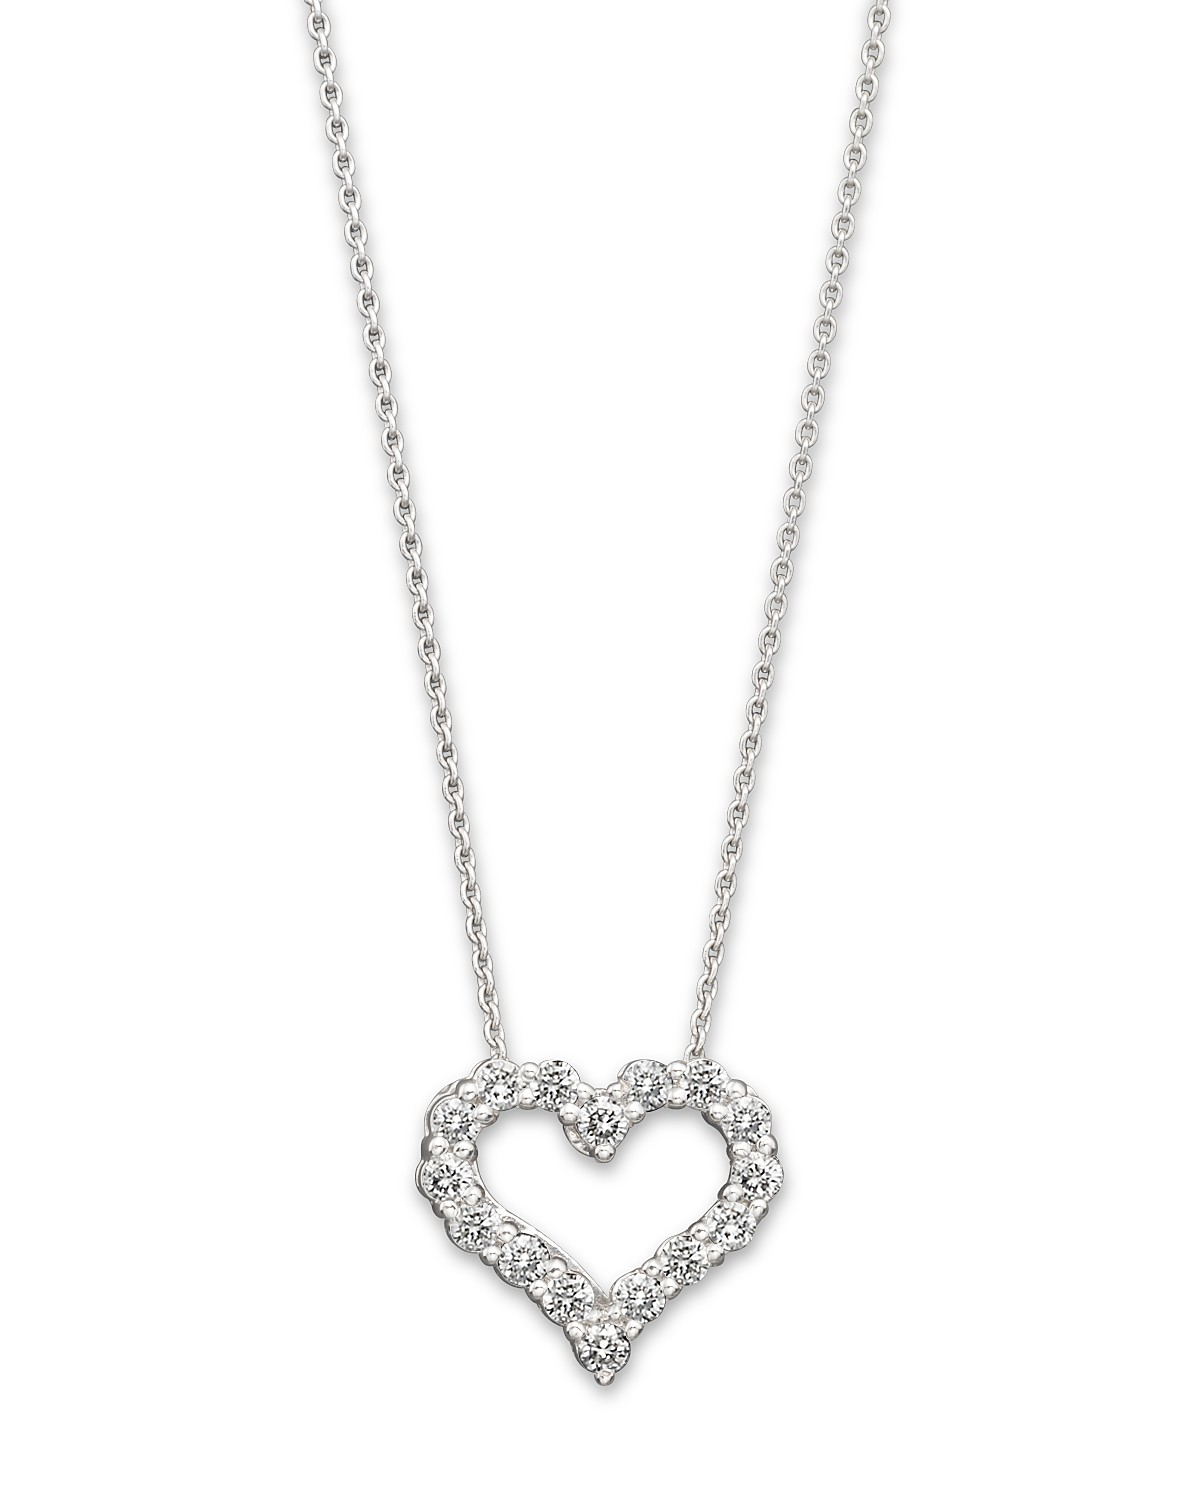 Diamond heart pendant necklace in 14k white gold 25 ct tw pdpimgshortdescription pdpimgshortdescription pdpimgshortdescription aloadofball